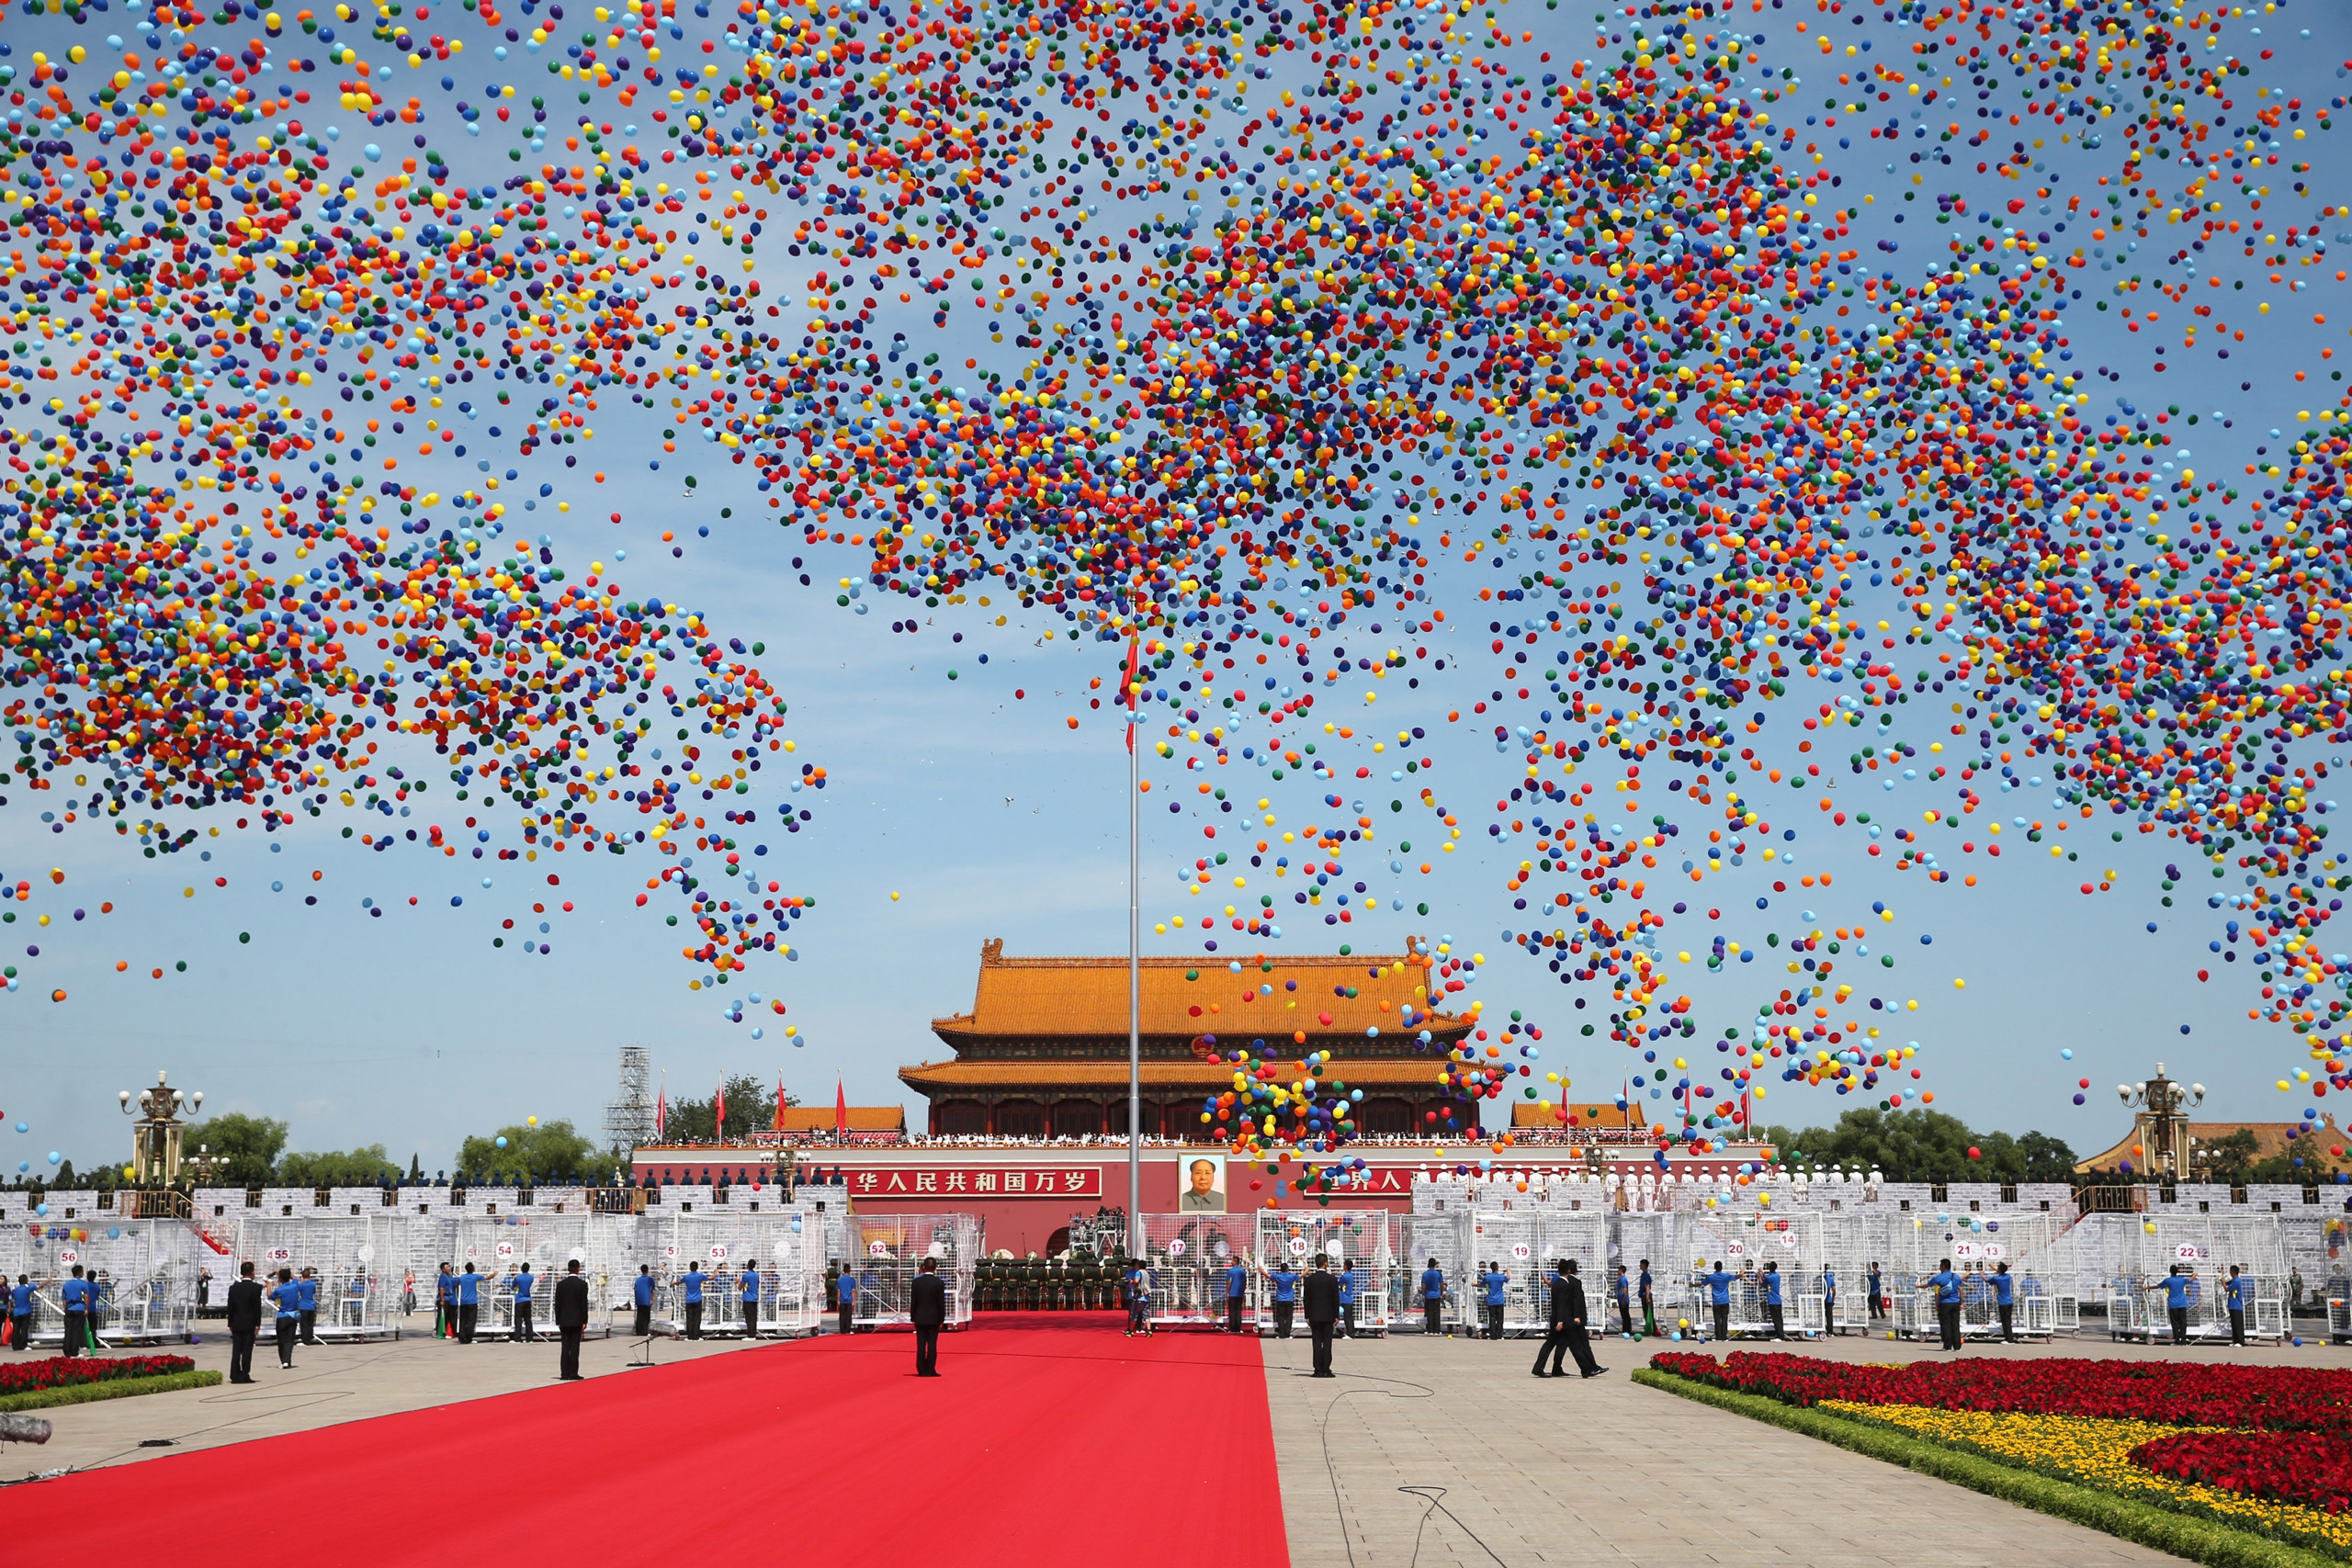 Balloons are released during the commemoration activities to mark the 70th anniversary of the end of World War II in Beijing, on Sept. 3, 2015.